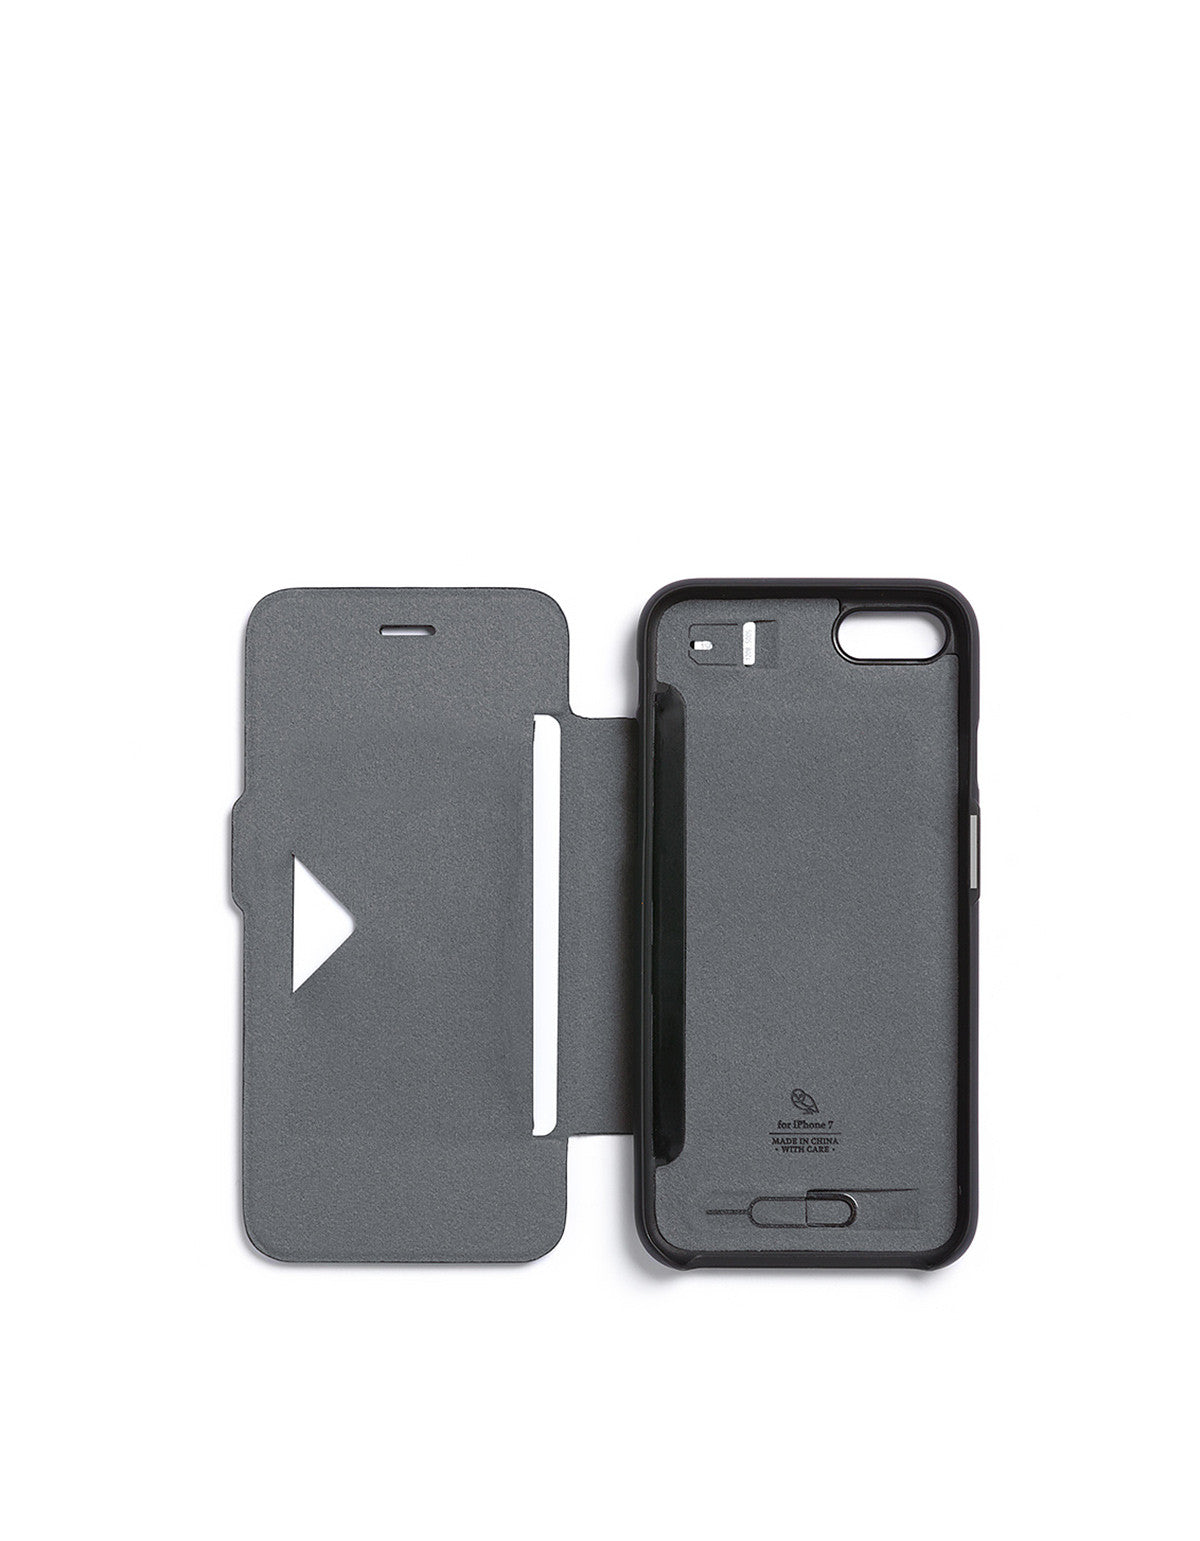 Bellroy Phone Wallet i7 Black - Still Life - 1